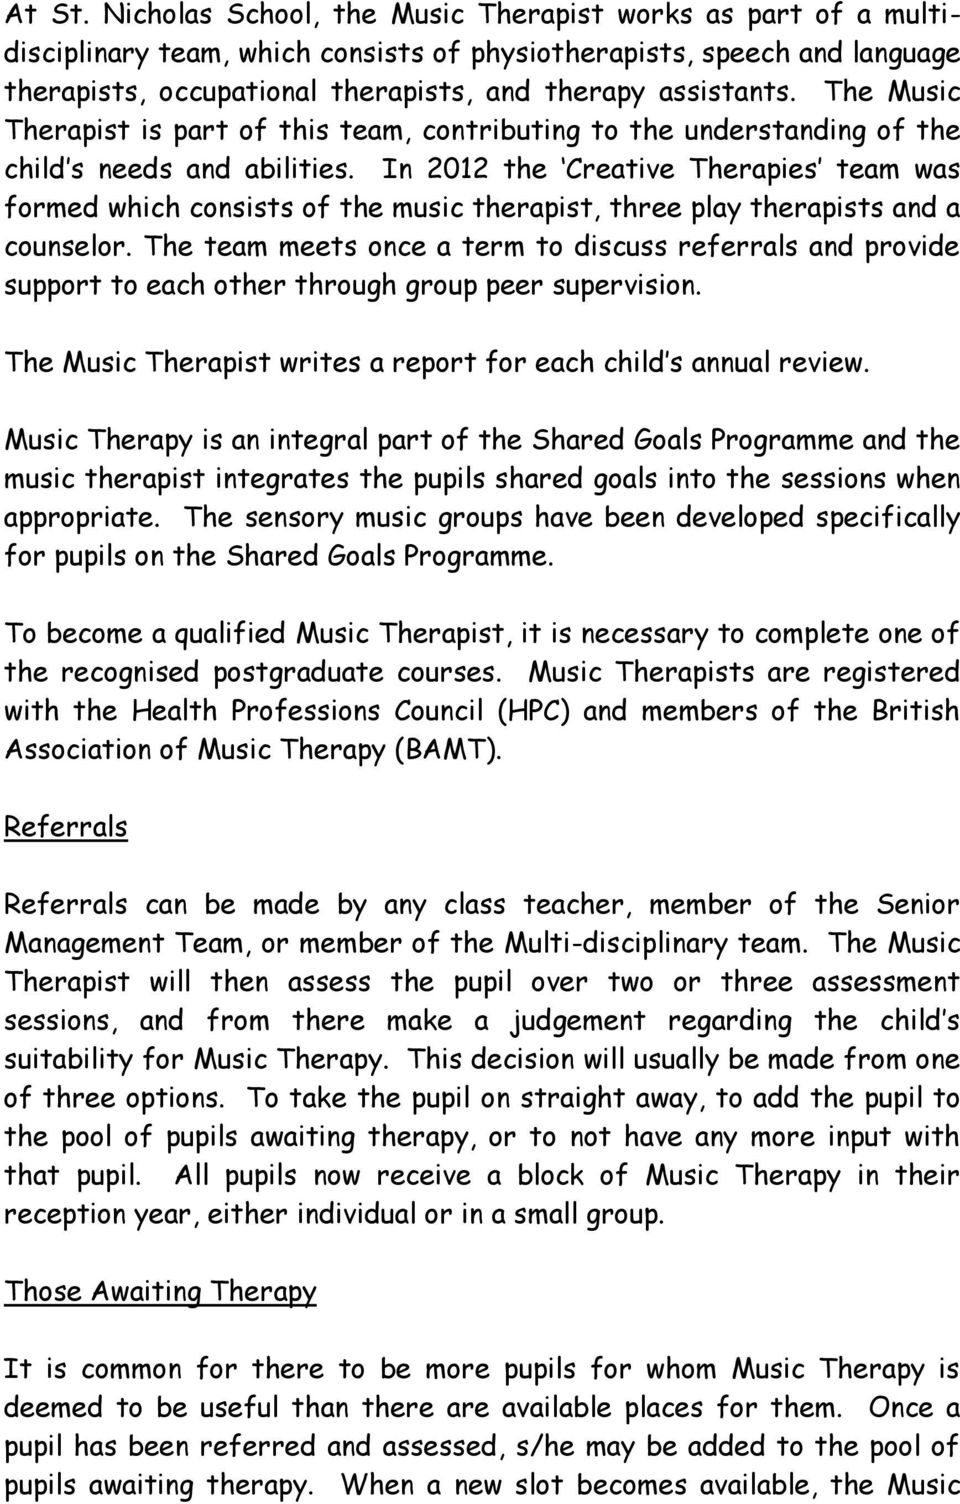 The Music Therapist is part of this team, contributing to the understanding of the child s needs and abilities.